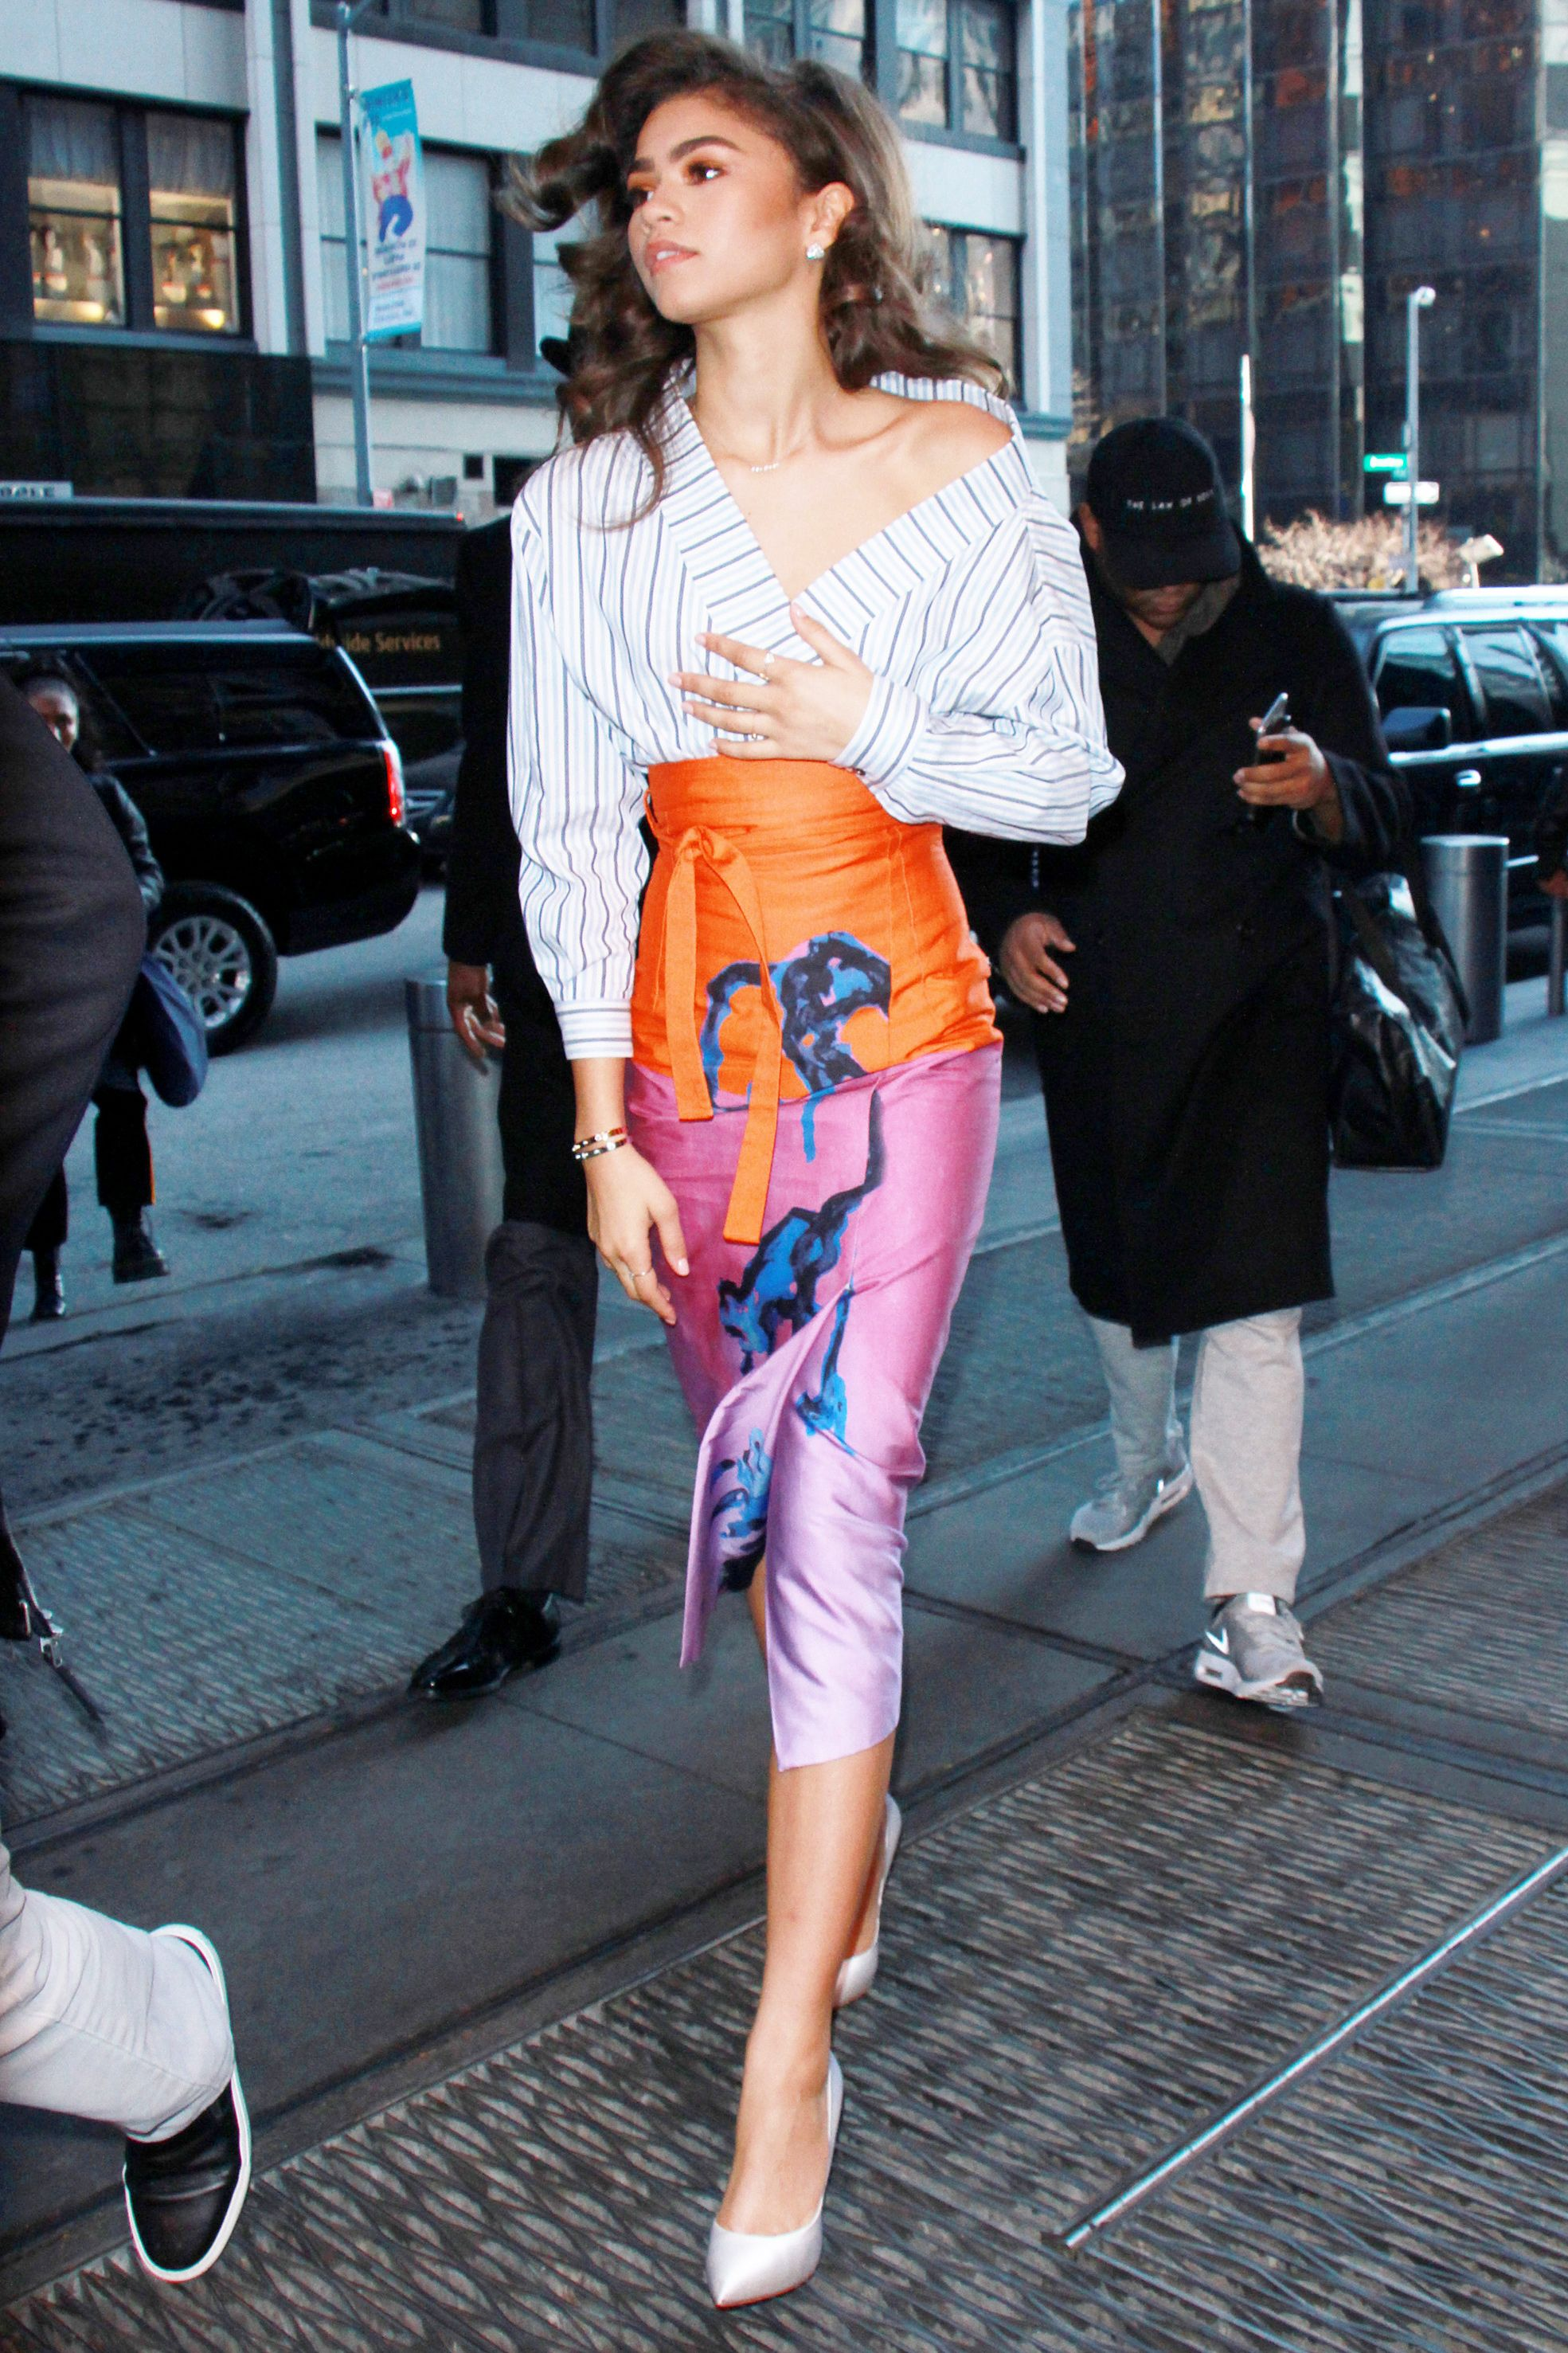 zendaya just nailed five fierce looks in one day  zendaya